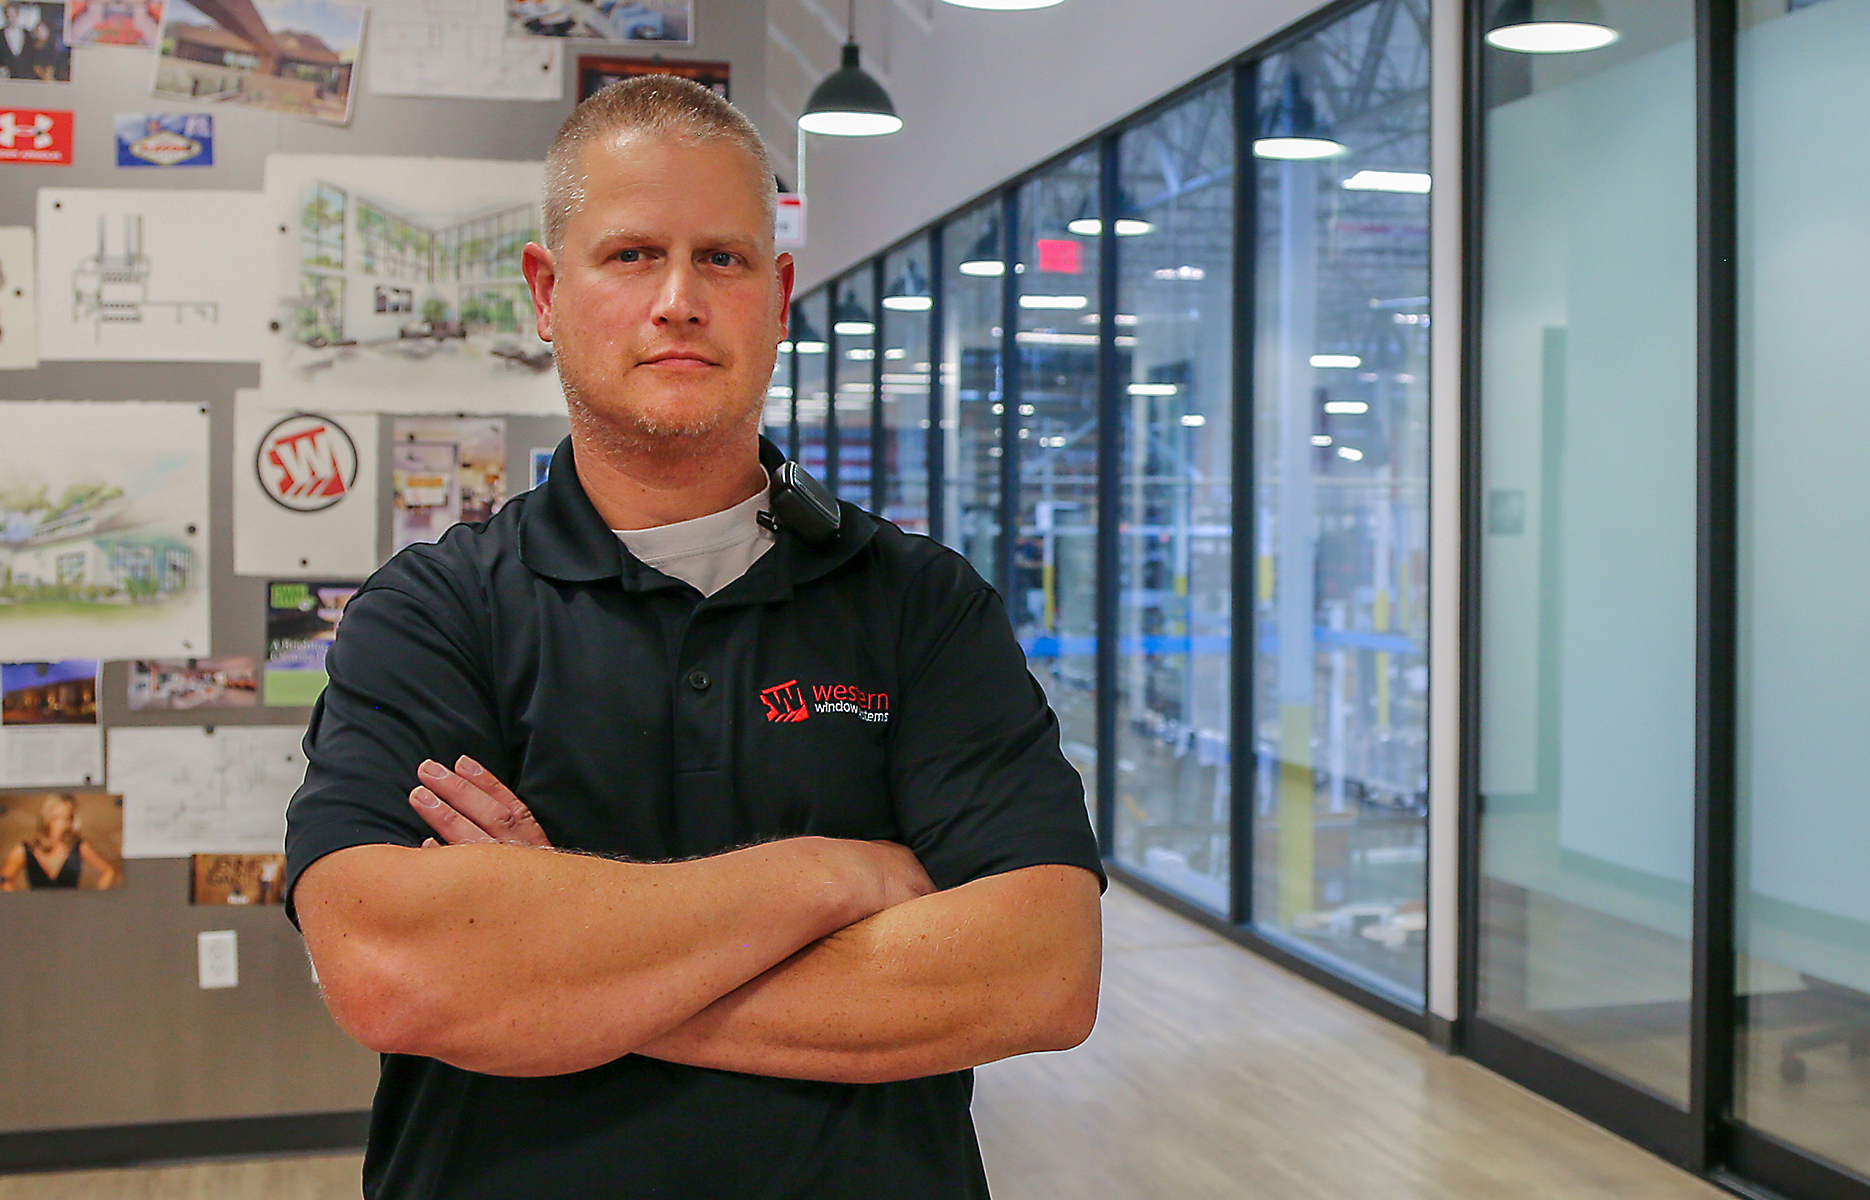 Manager of the Quarter – October 2019